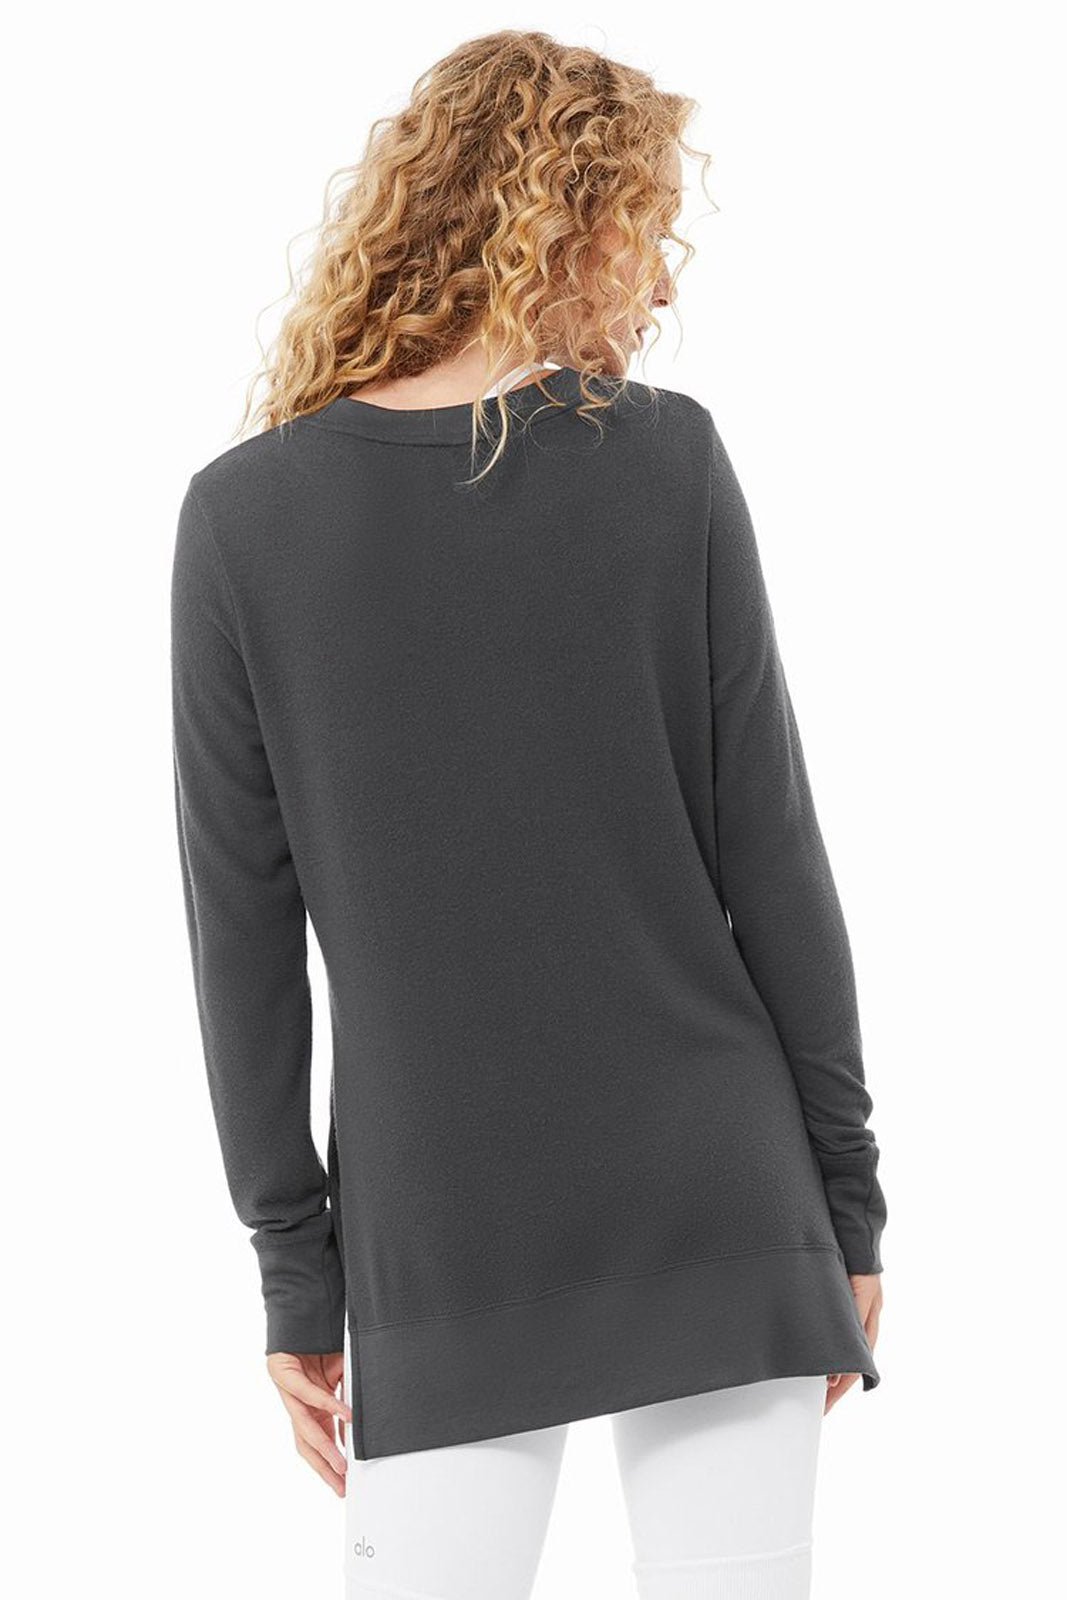 Alo Glimpse L/S Top, Anthracite